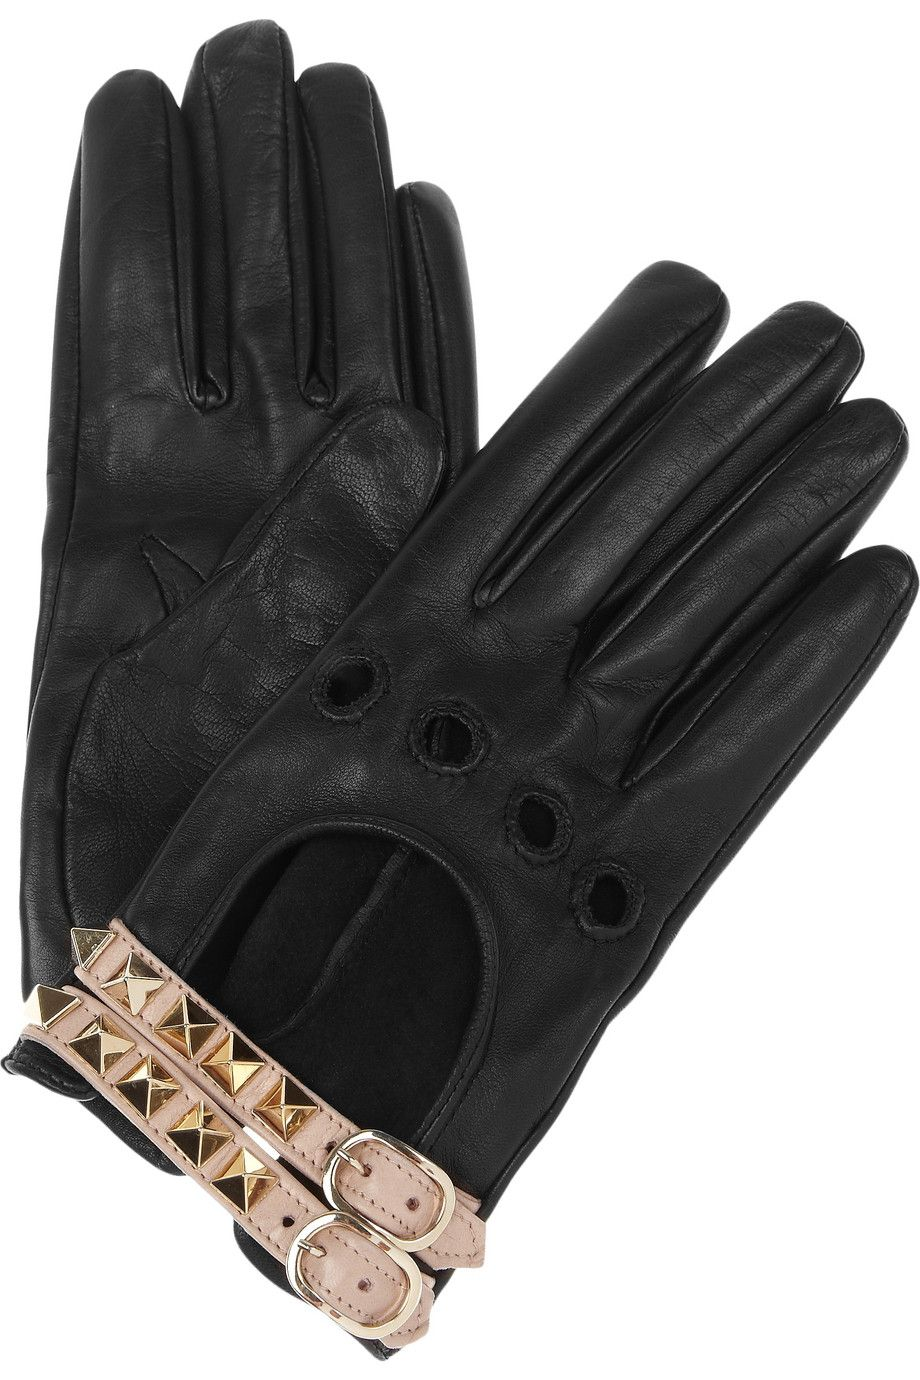 Leather driving gloves from drive - Valentino Leather Studded Gloves If I Drive For You You Give Me A